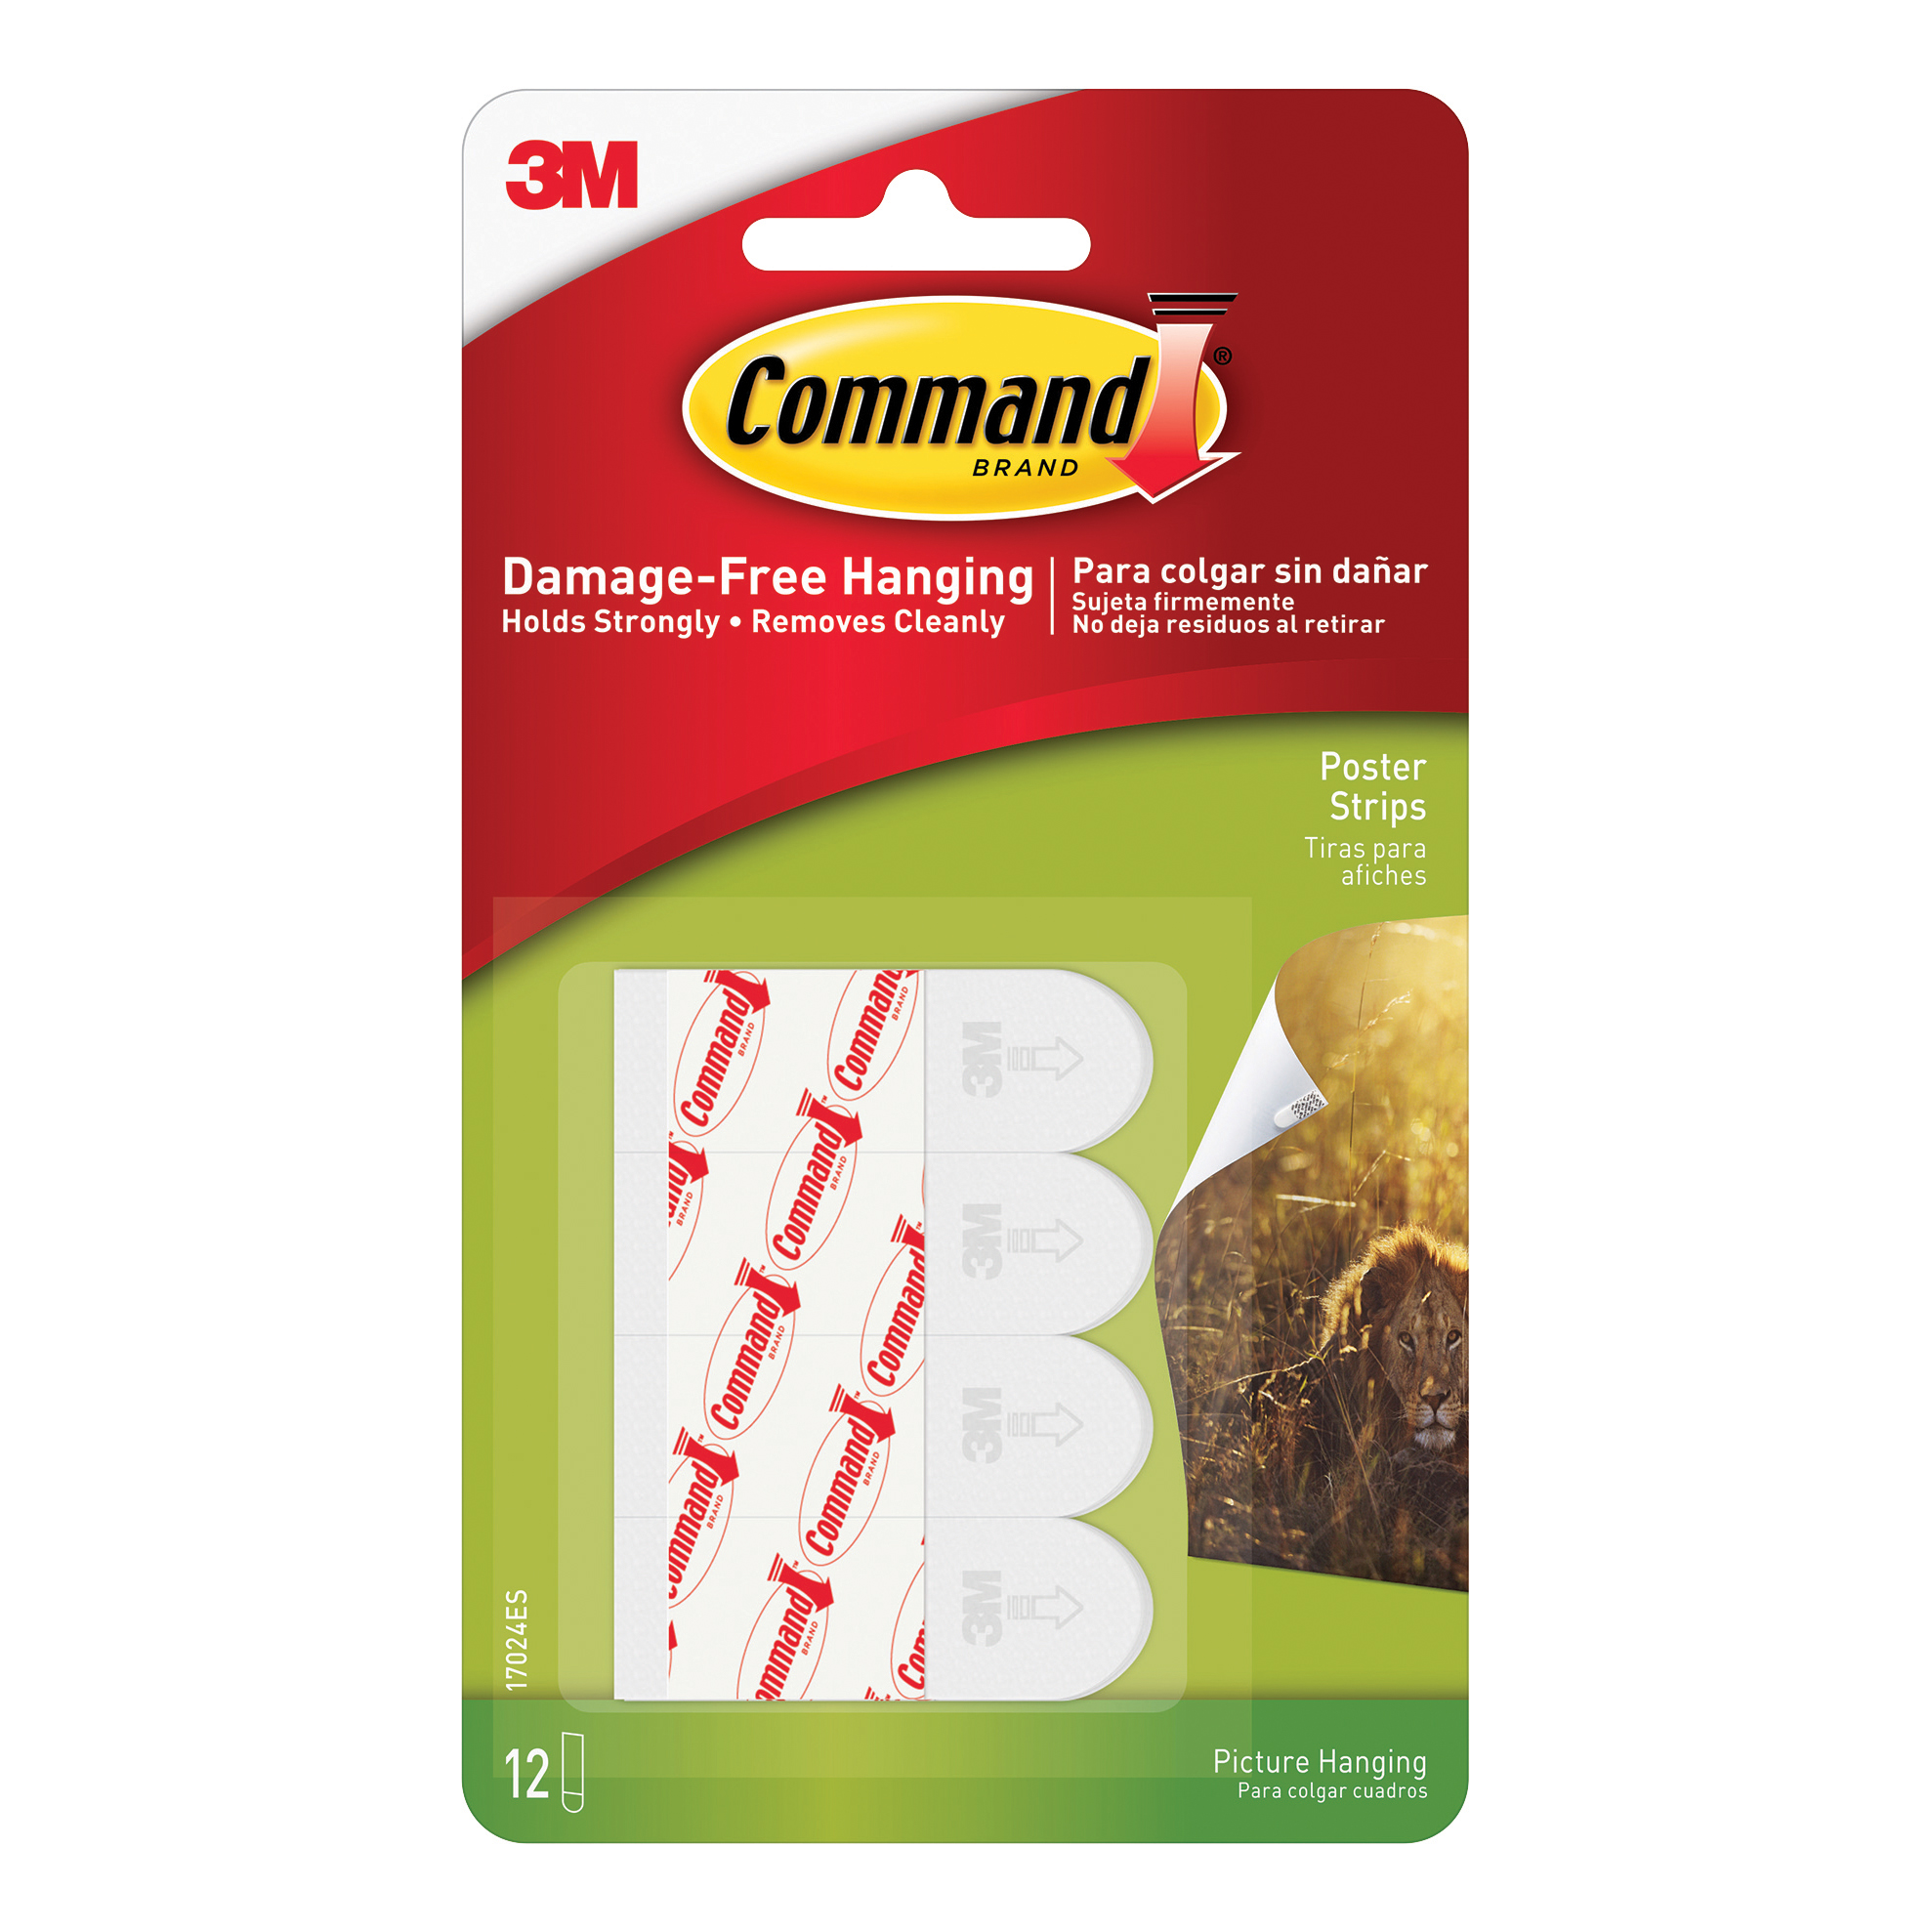 3M Command Adhesive Poster Strips Clean-removing Holding Capacity 0.45kg Ref 17024 Pack 12